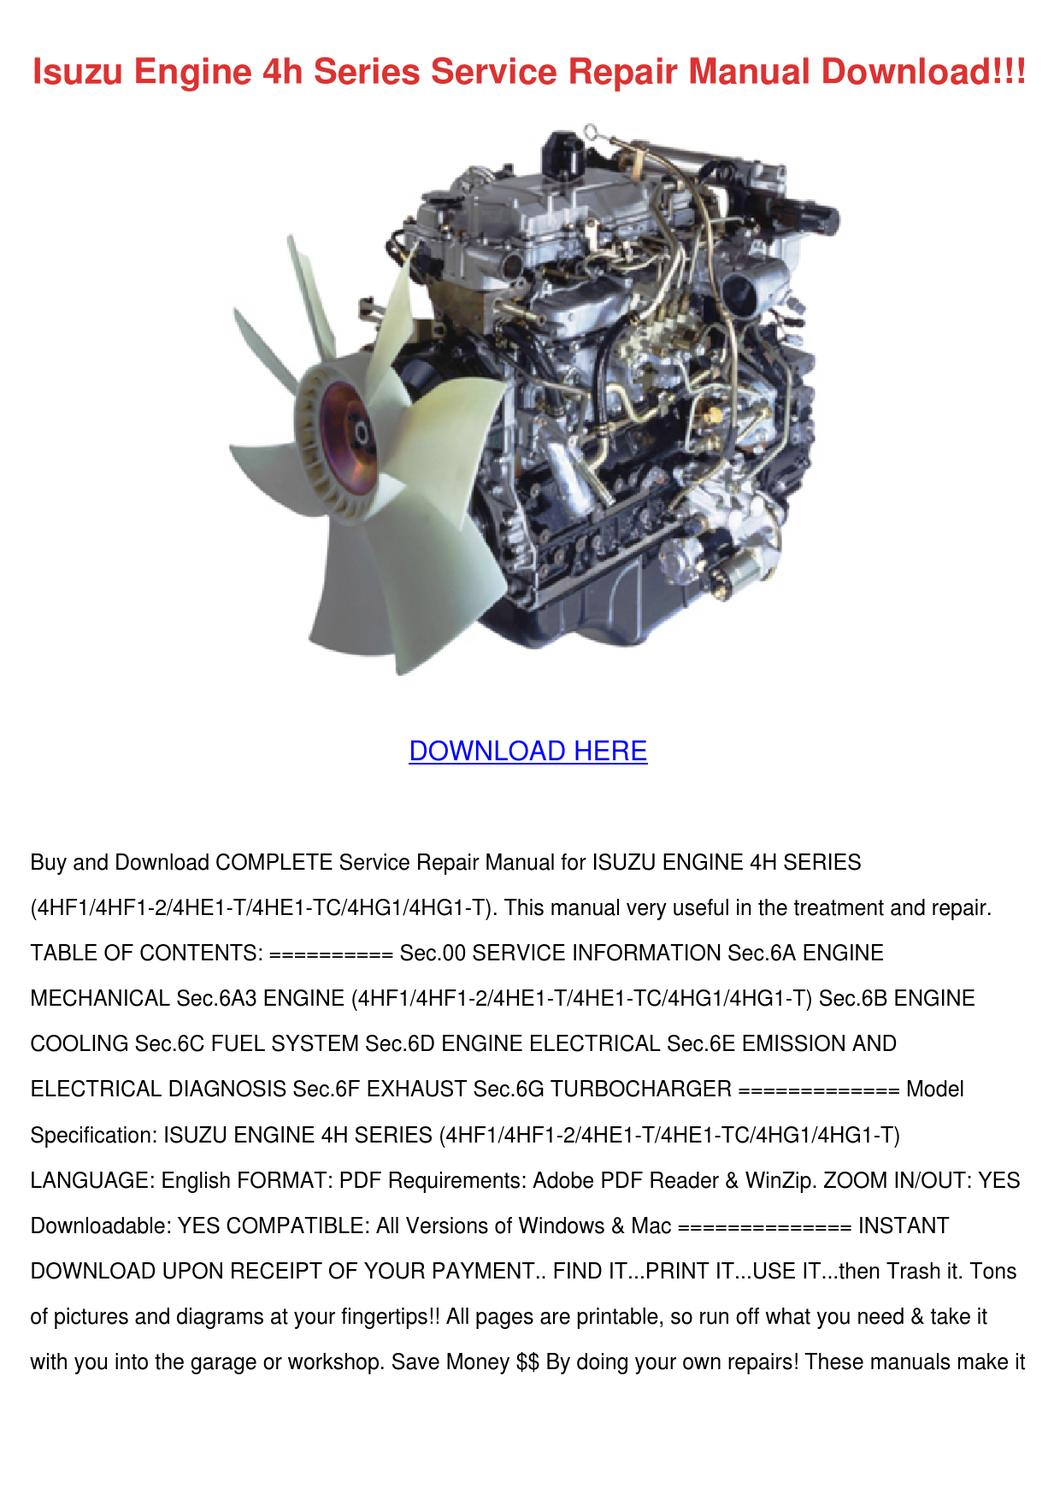 seadoo engine 951 diagram service manual 97 seadoo xp engine diagram wiring diagram   elsalvadorla 2003 seadoo speedster owners manual 2003 seadoo sportster le service manual